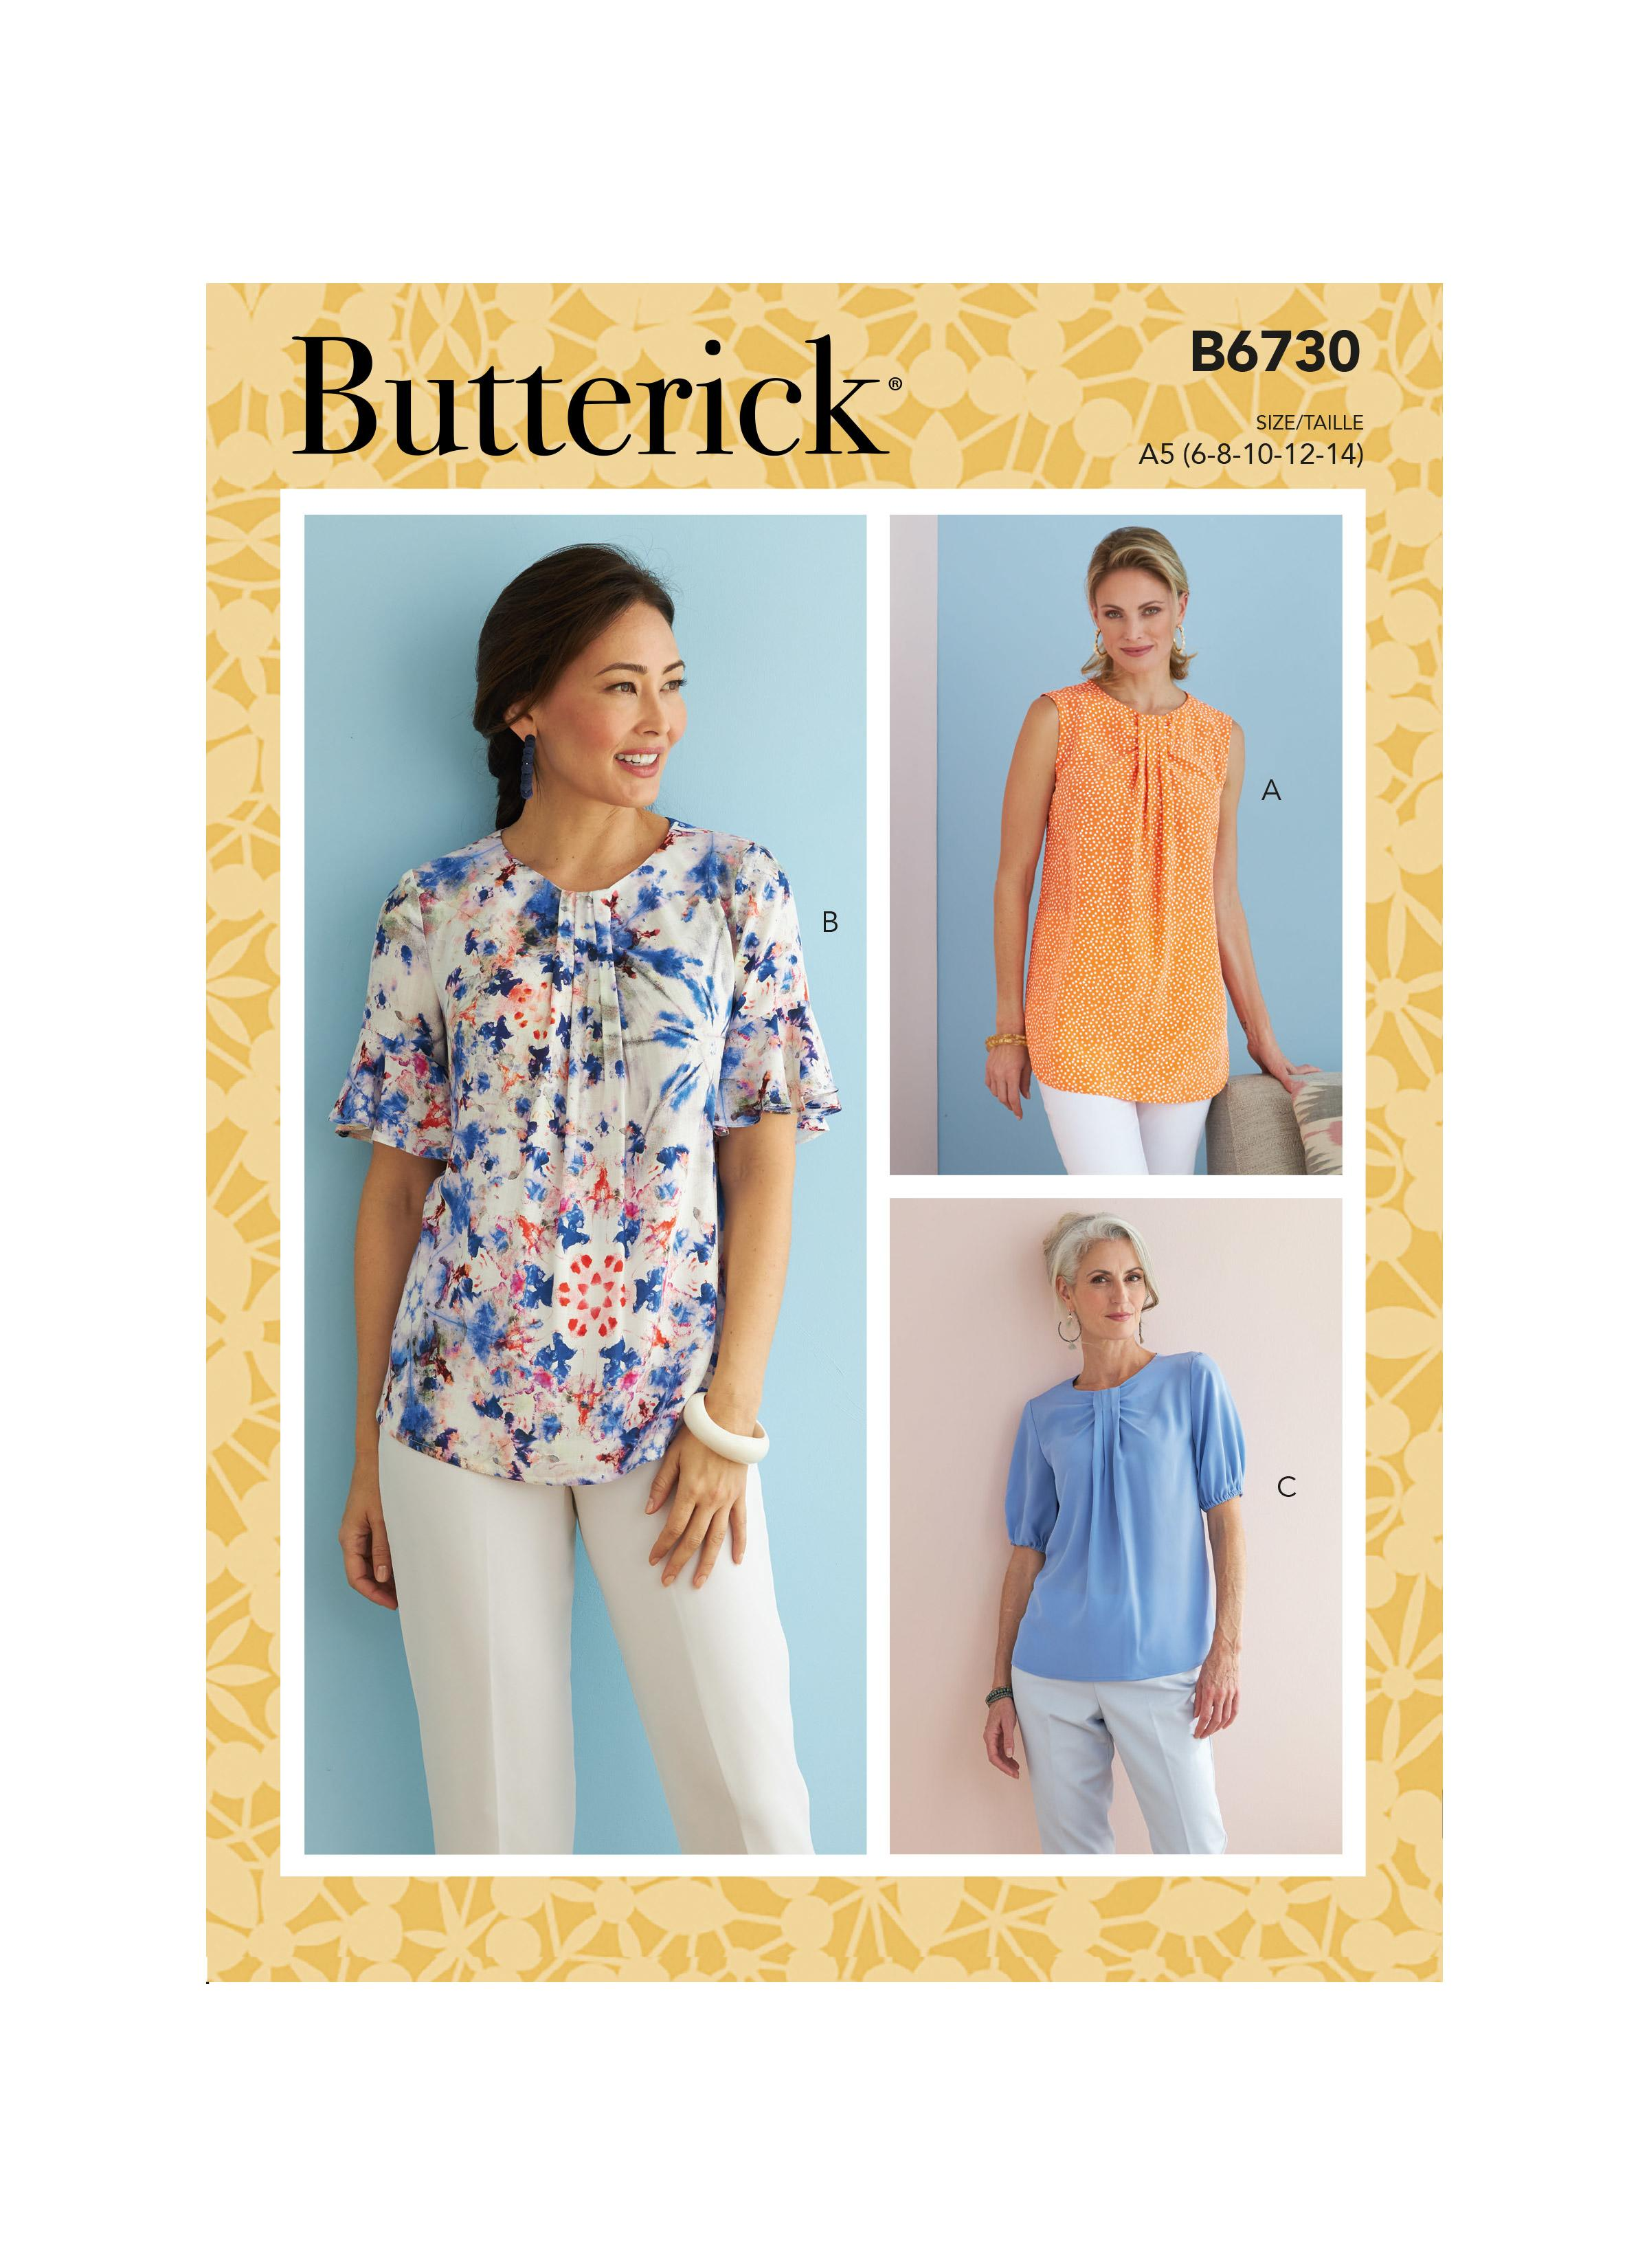 Butterick B6730 Misses' Top